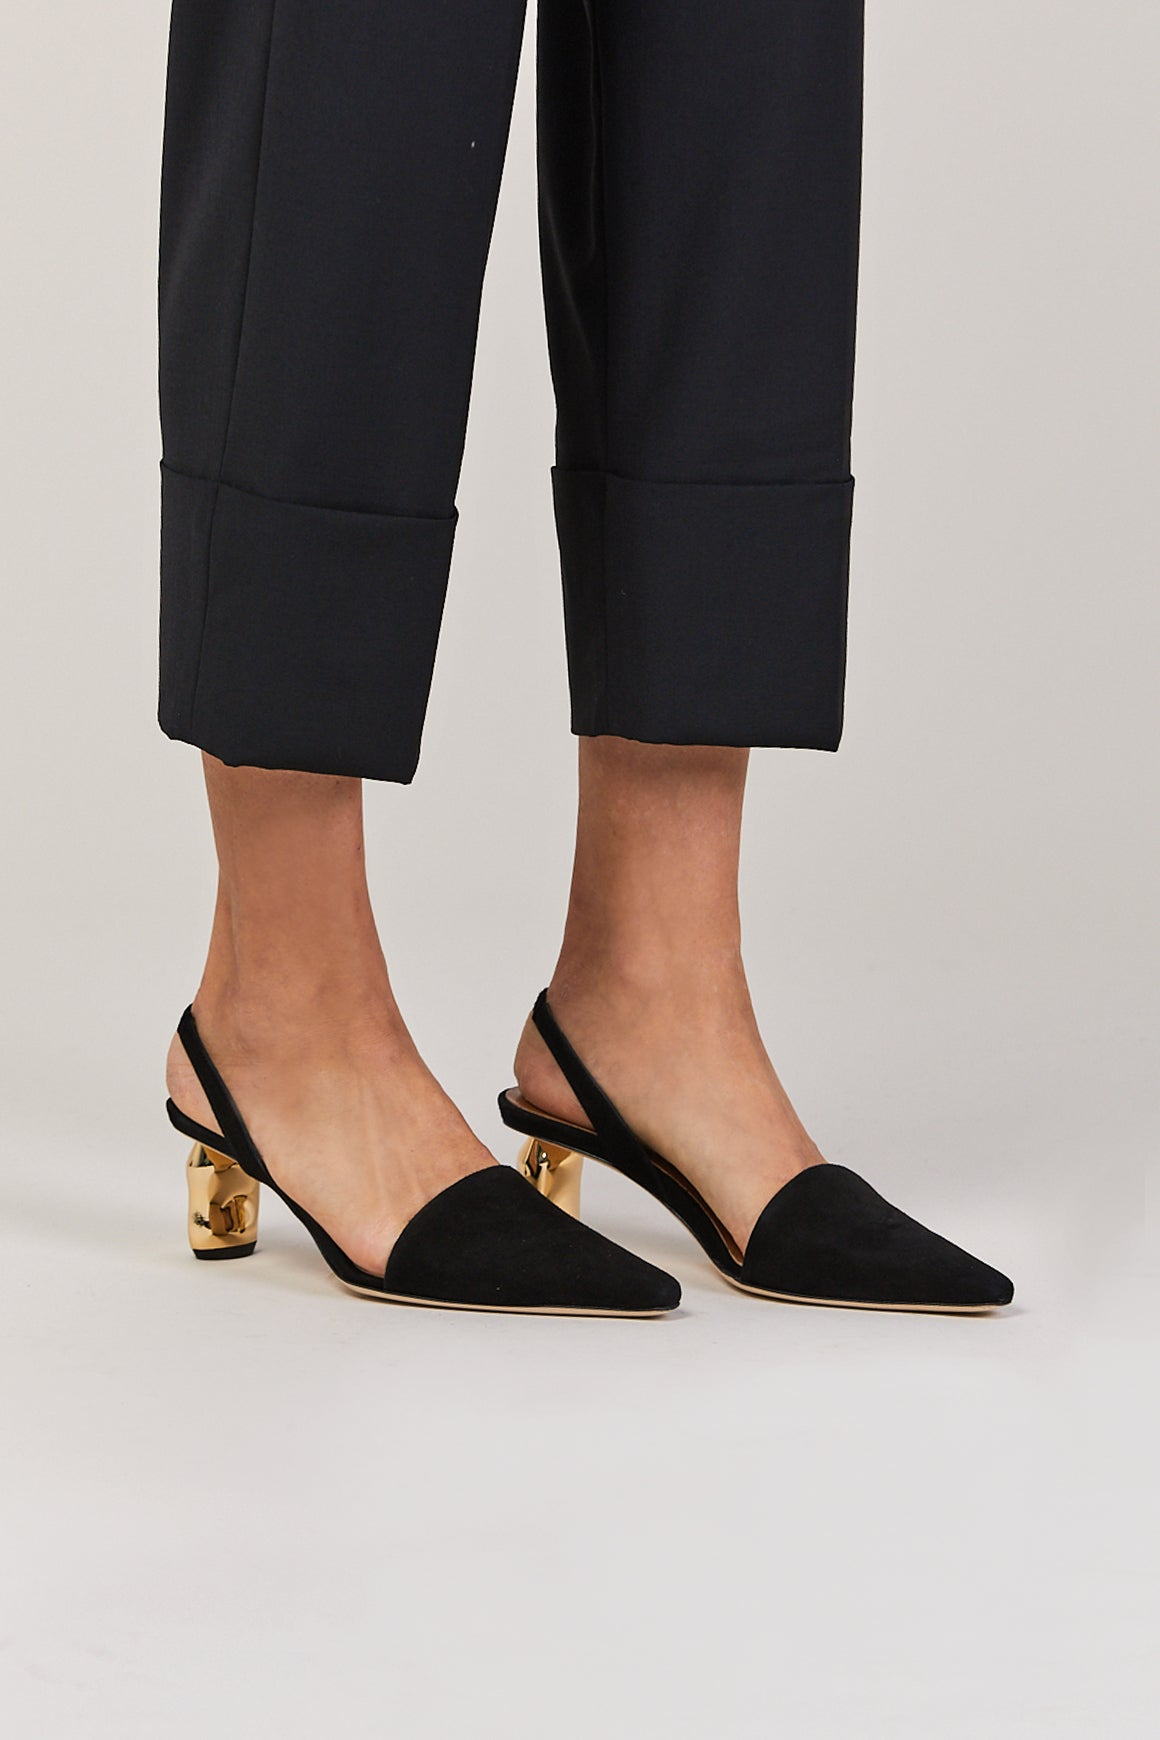 Conie Slingback, Black with gold heel